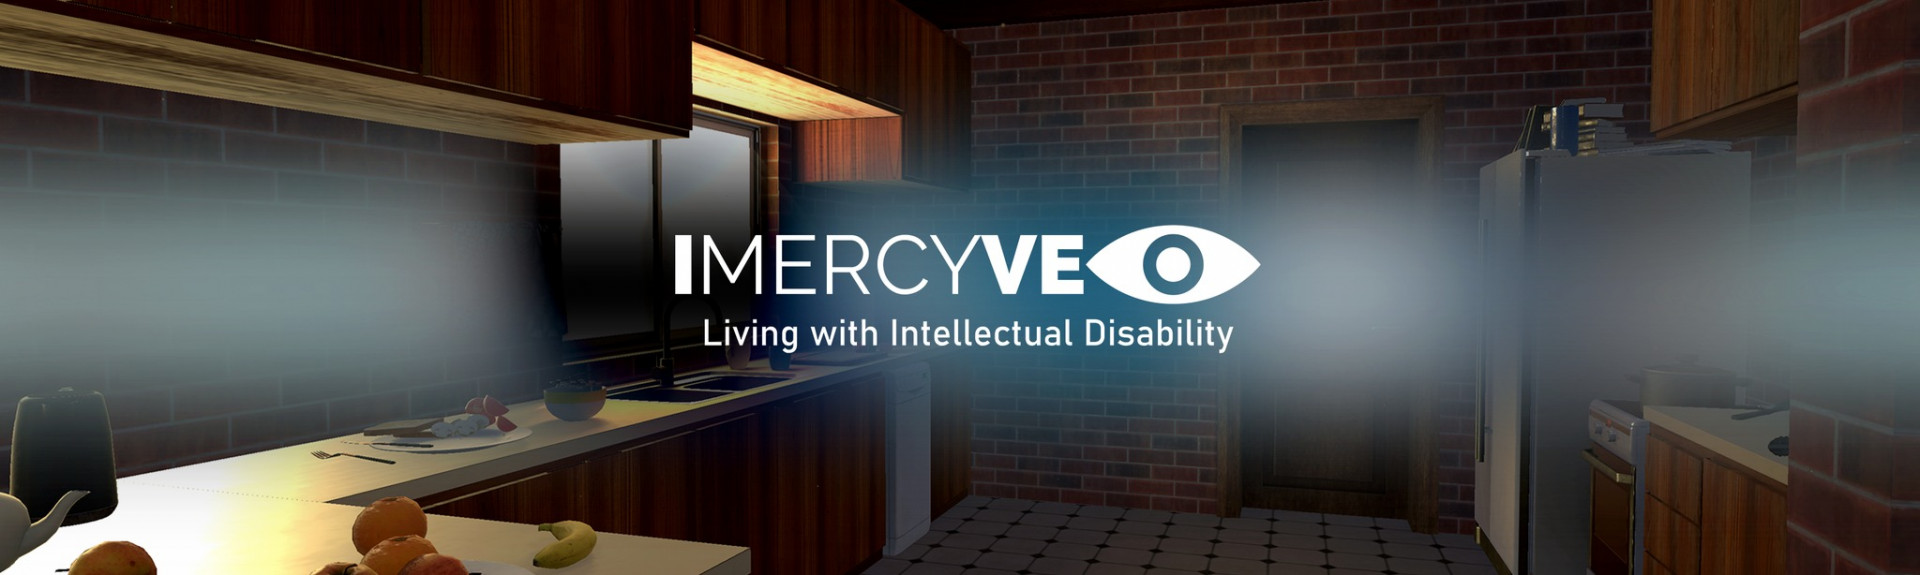 Imercyve: Living with Intellectual Disability